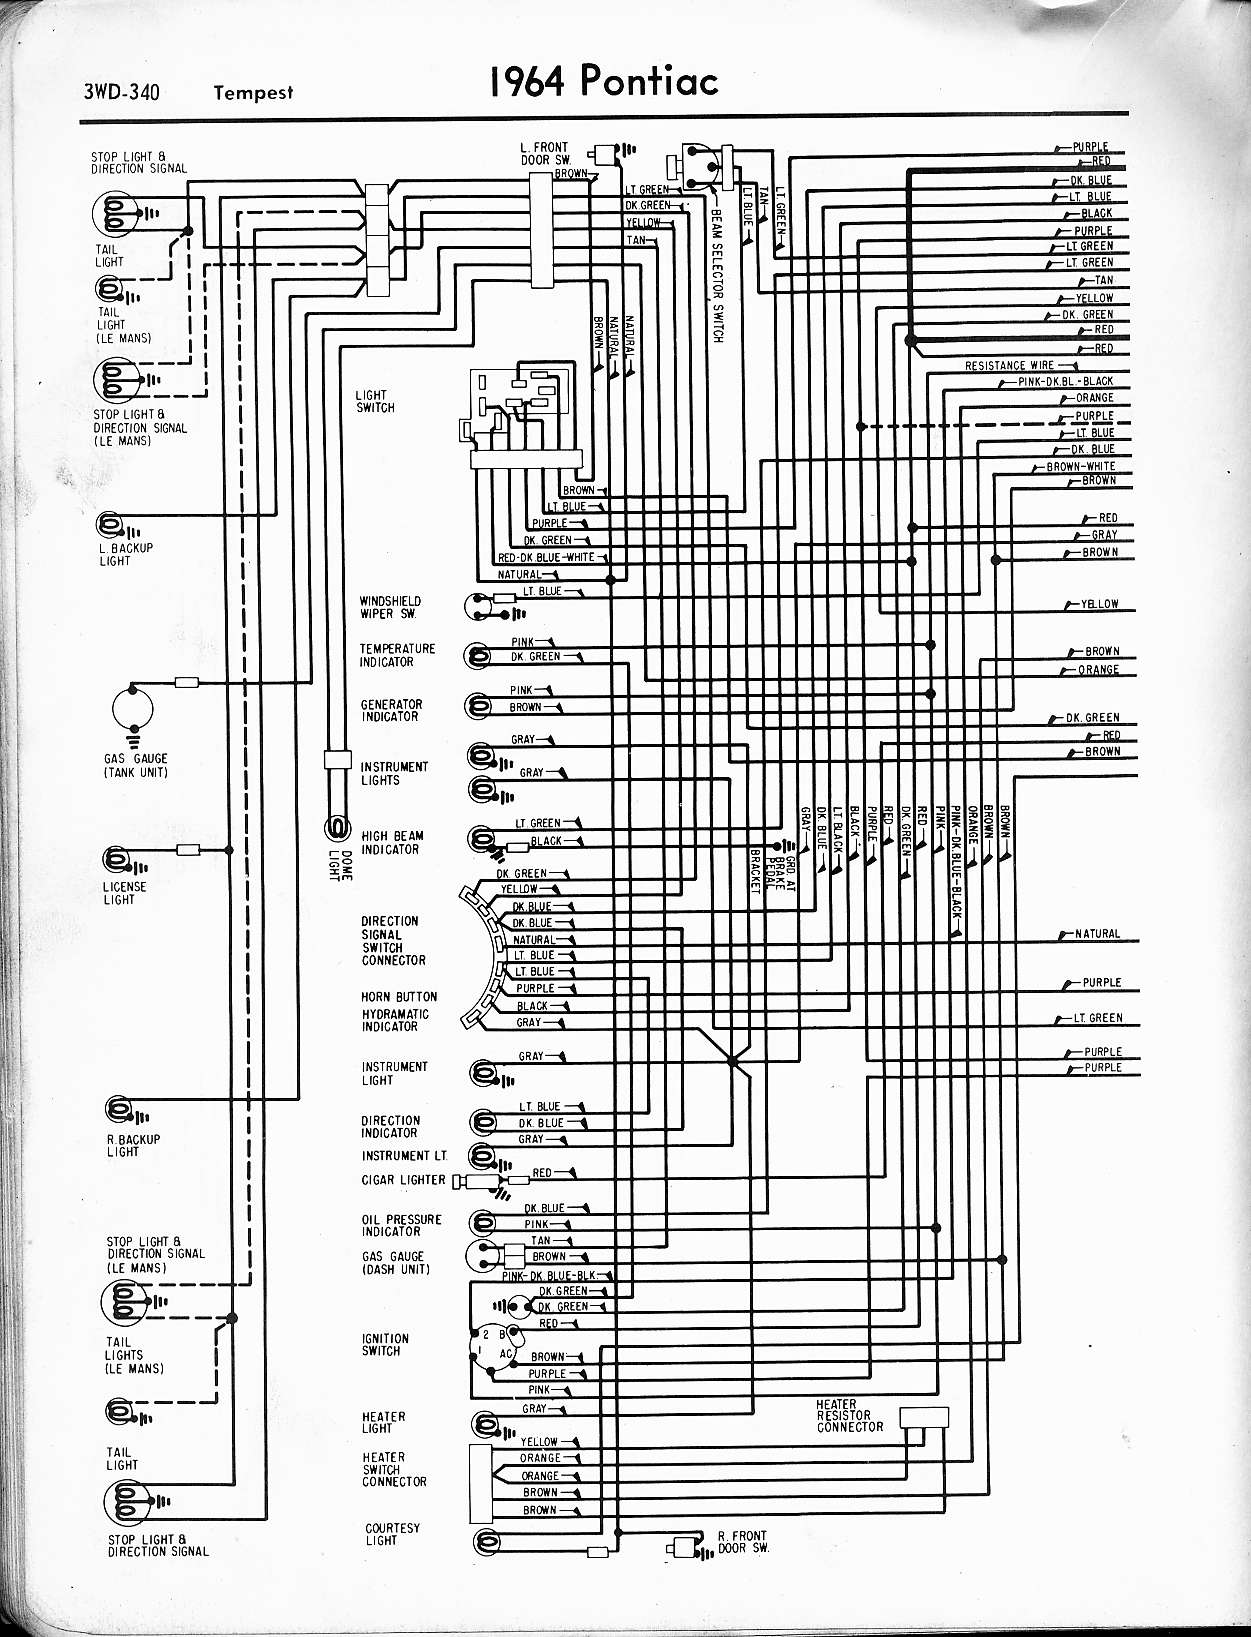 1966 gto wiper wiring diagram wiring diagram for light switch \u2022 1963 Pontiac GTO wallace racing wiring diagrams rh wallaceracing com 1964 gto dash wiring diagram wiring diagram pontiac gto